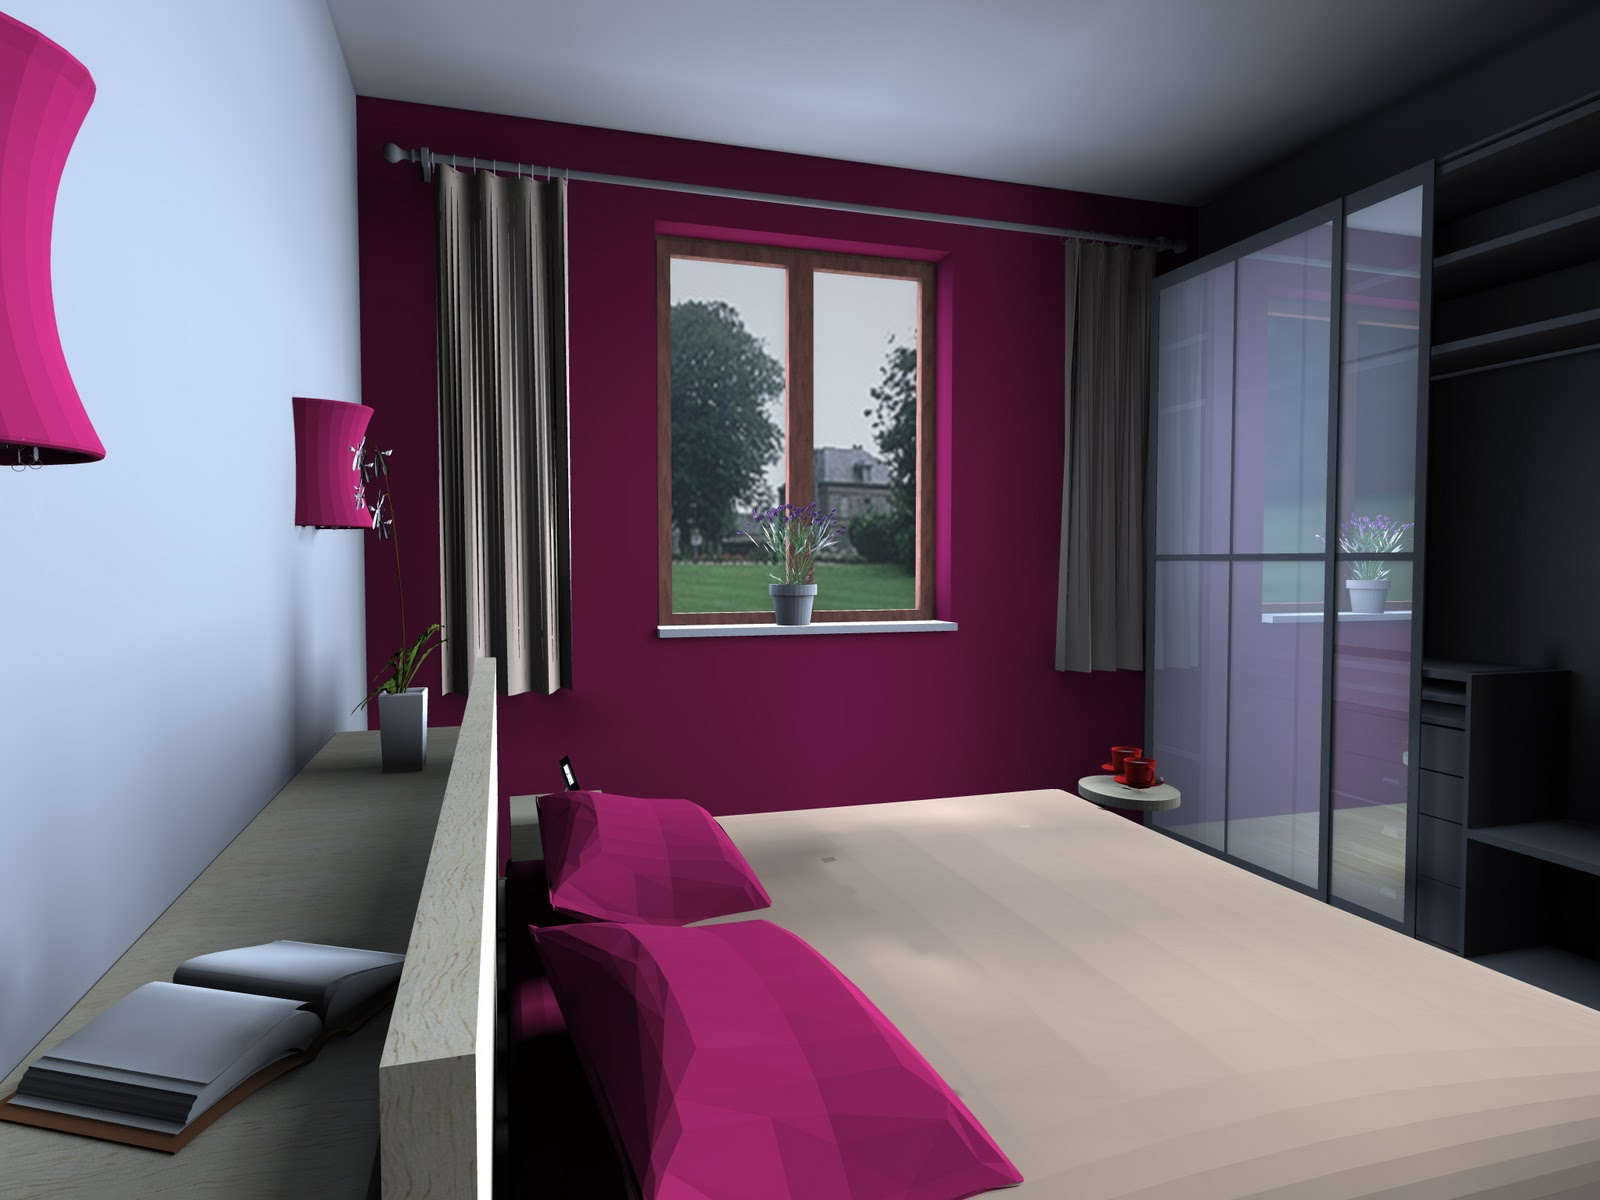 I d a 3 interior designers architects una camera - Abbinamento colori pareti camera da letto ...